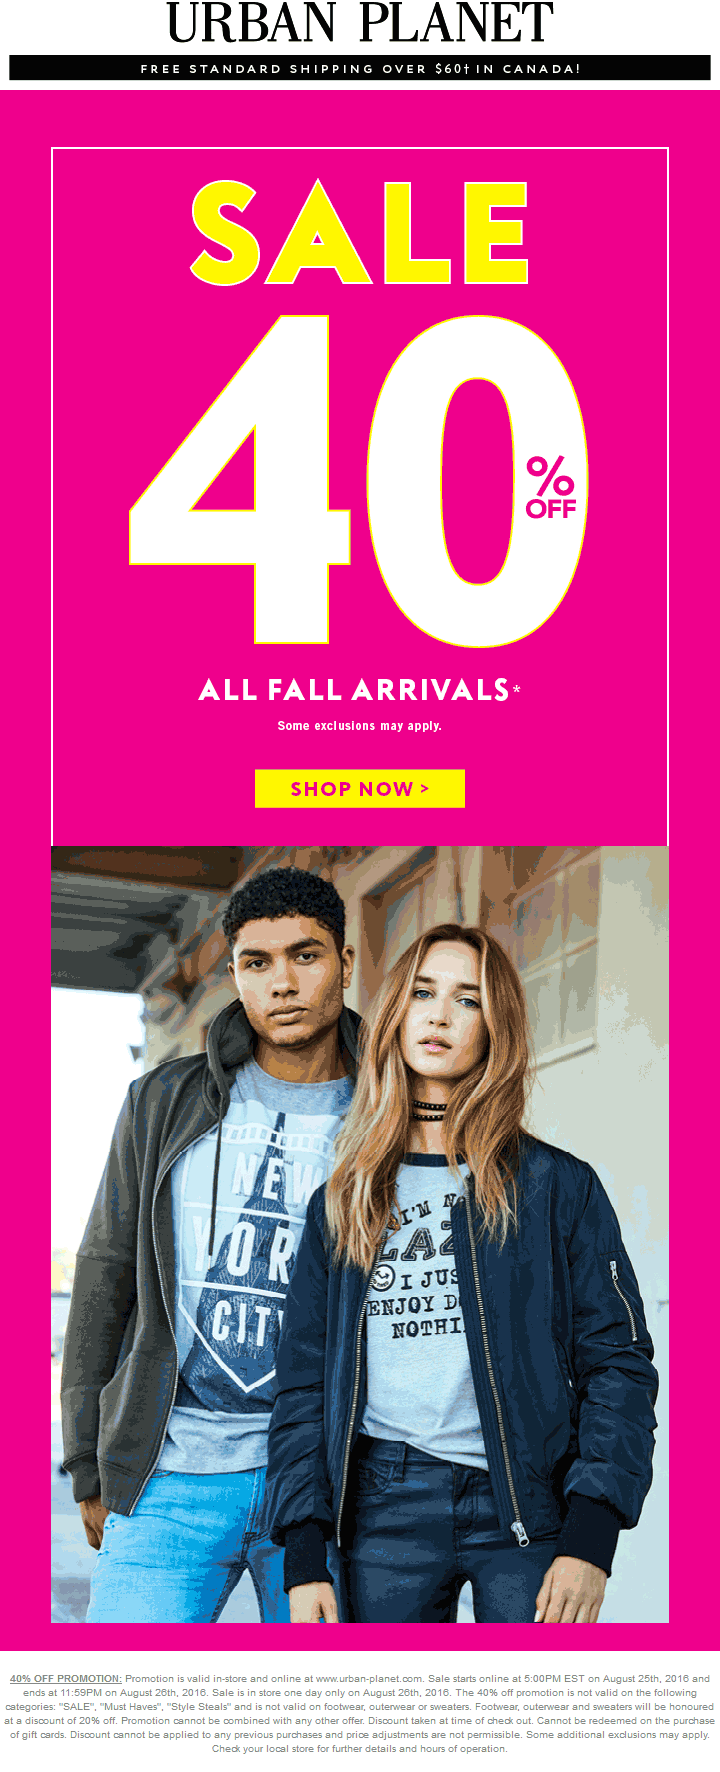 Urban Planet Coupon March 2018 40% off Fall today at Urban Planet, ditto online